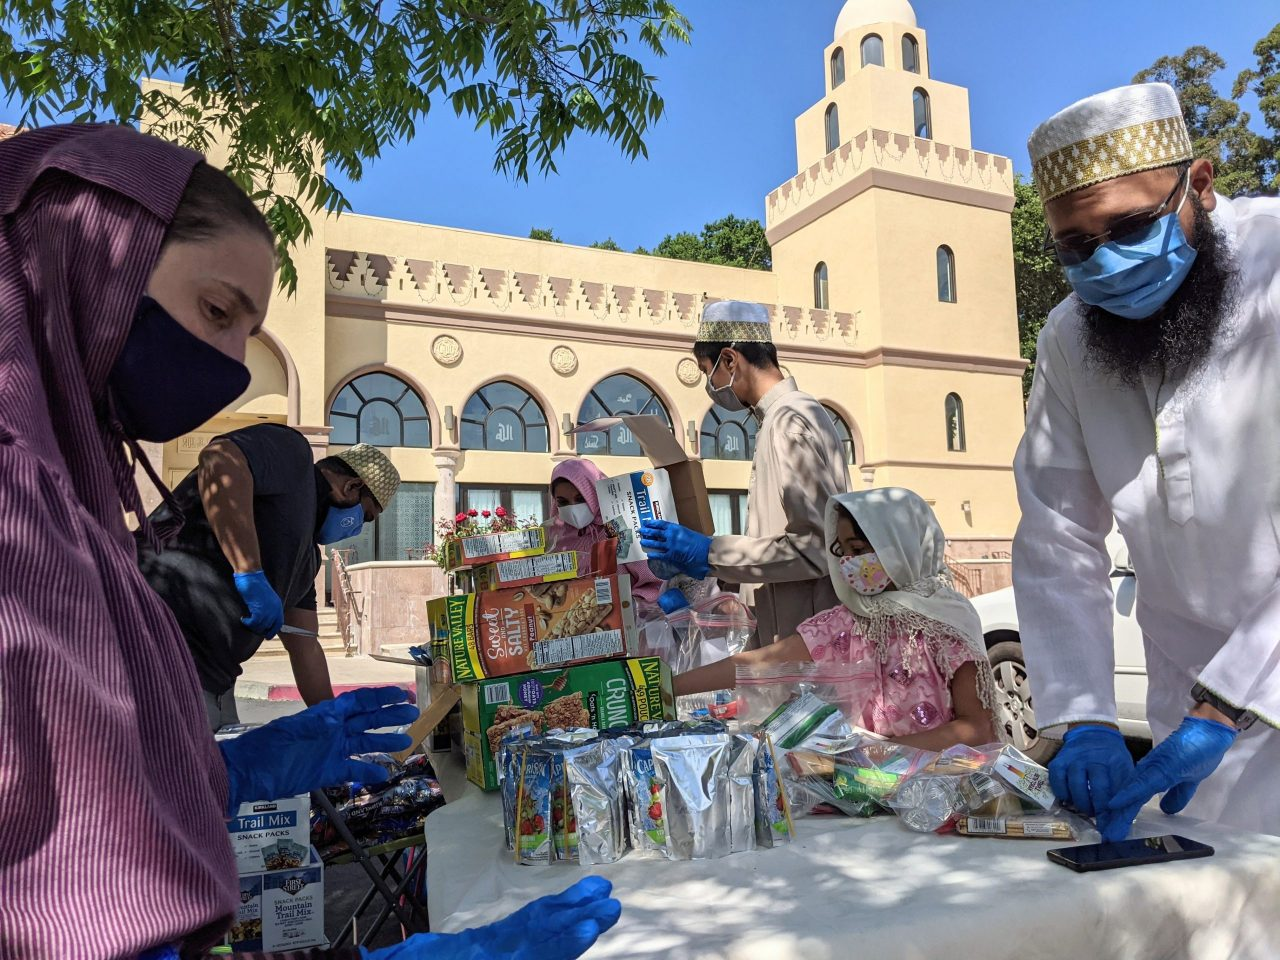 Muslim volunteers assemble snack and hygiene packs at Masjid-e-Mohammedi in Fremont, part of a day of cooperation between the mosque and Temple Beth Torah, May 2021. (Photo/Mufaddal Ezzy)